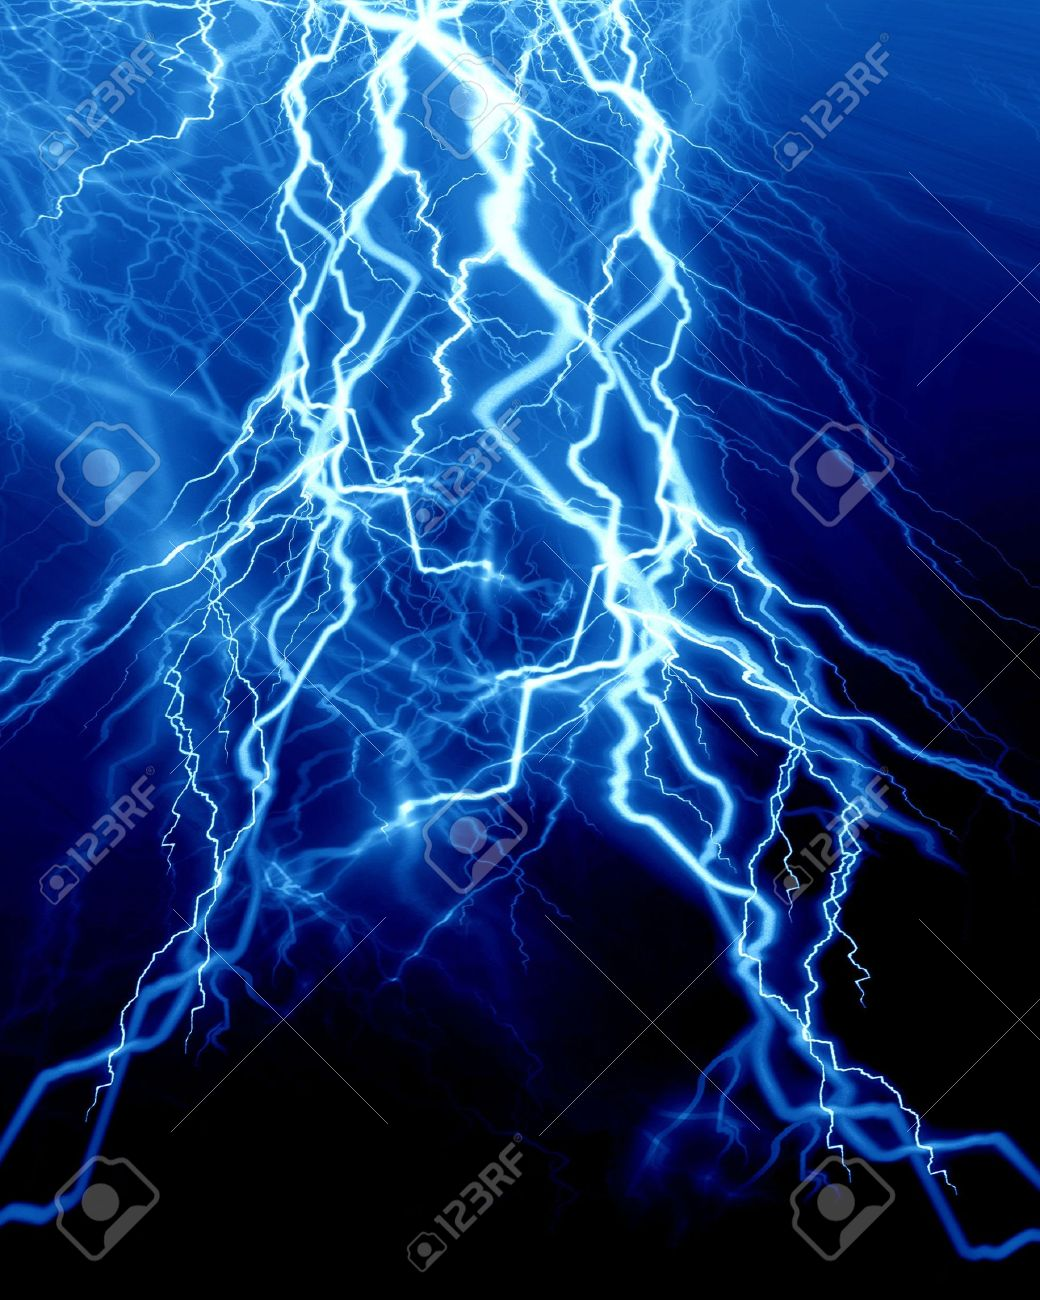 Thunder And Lightning Images Stock Pictures Royalty Free